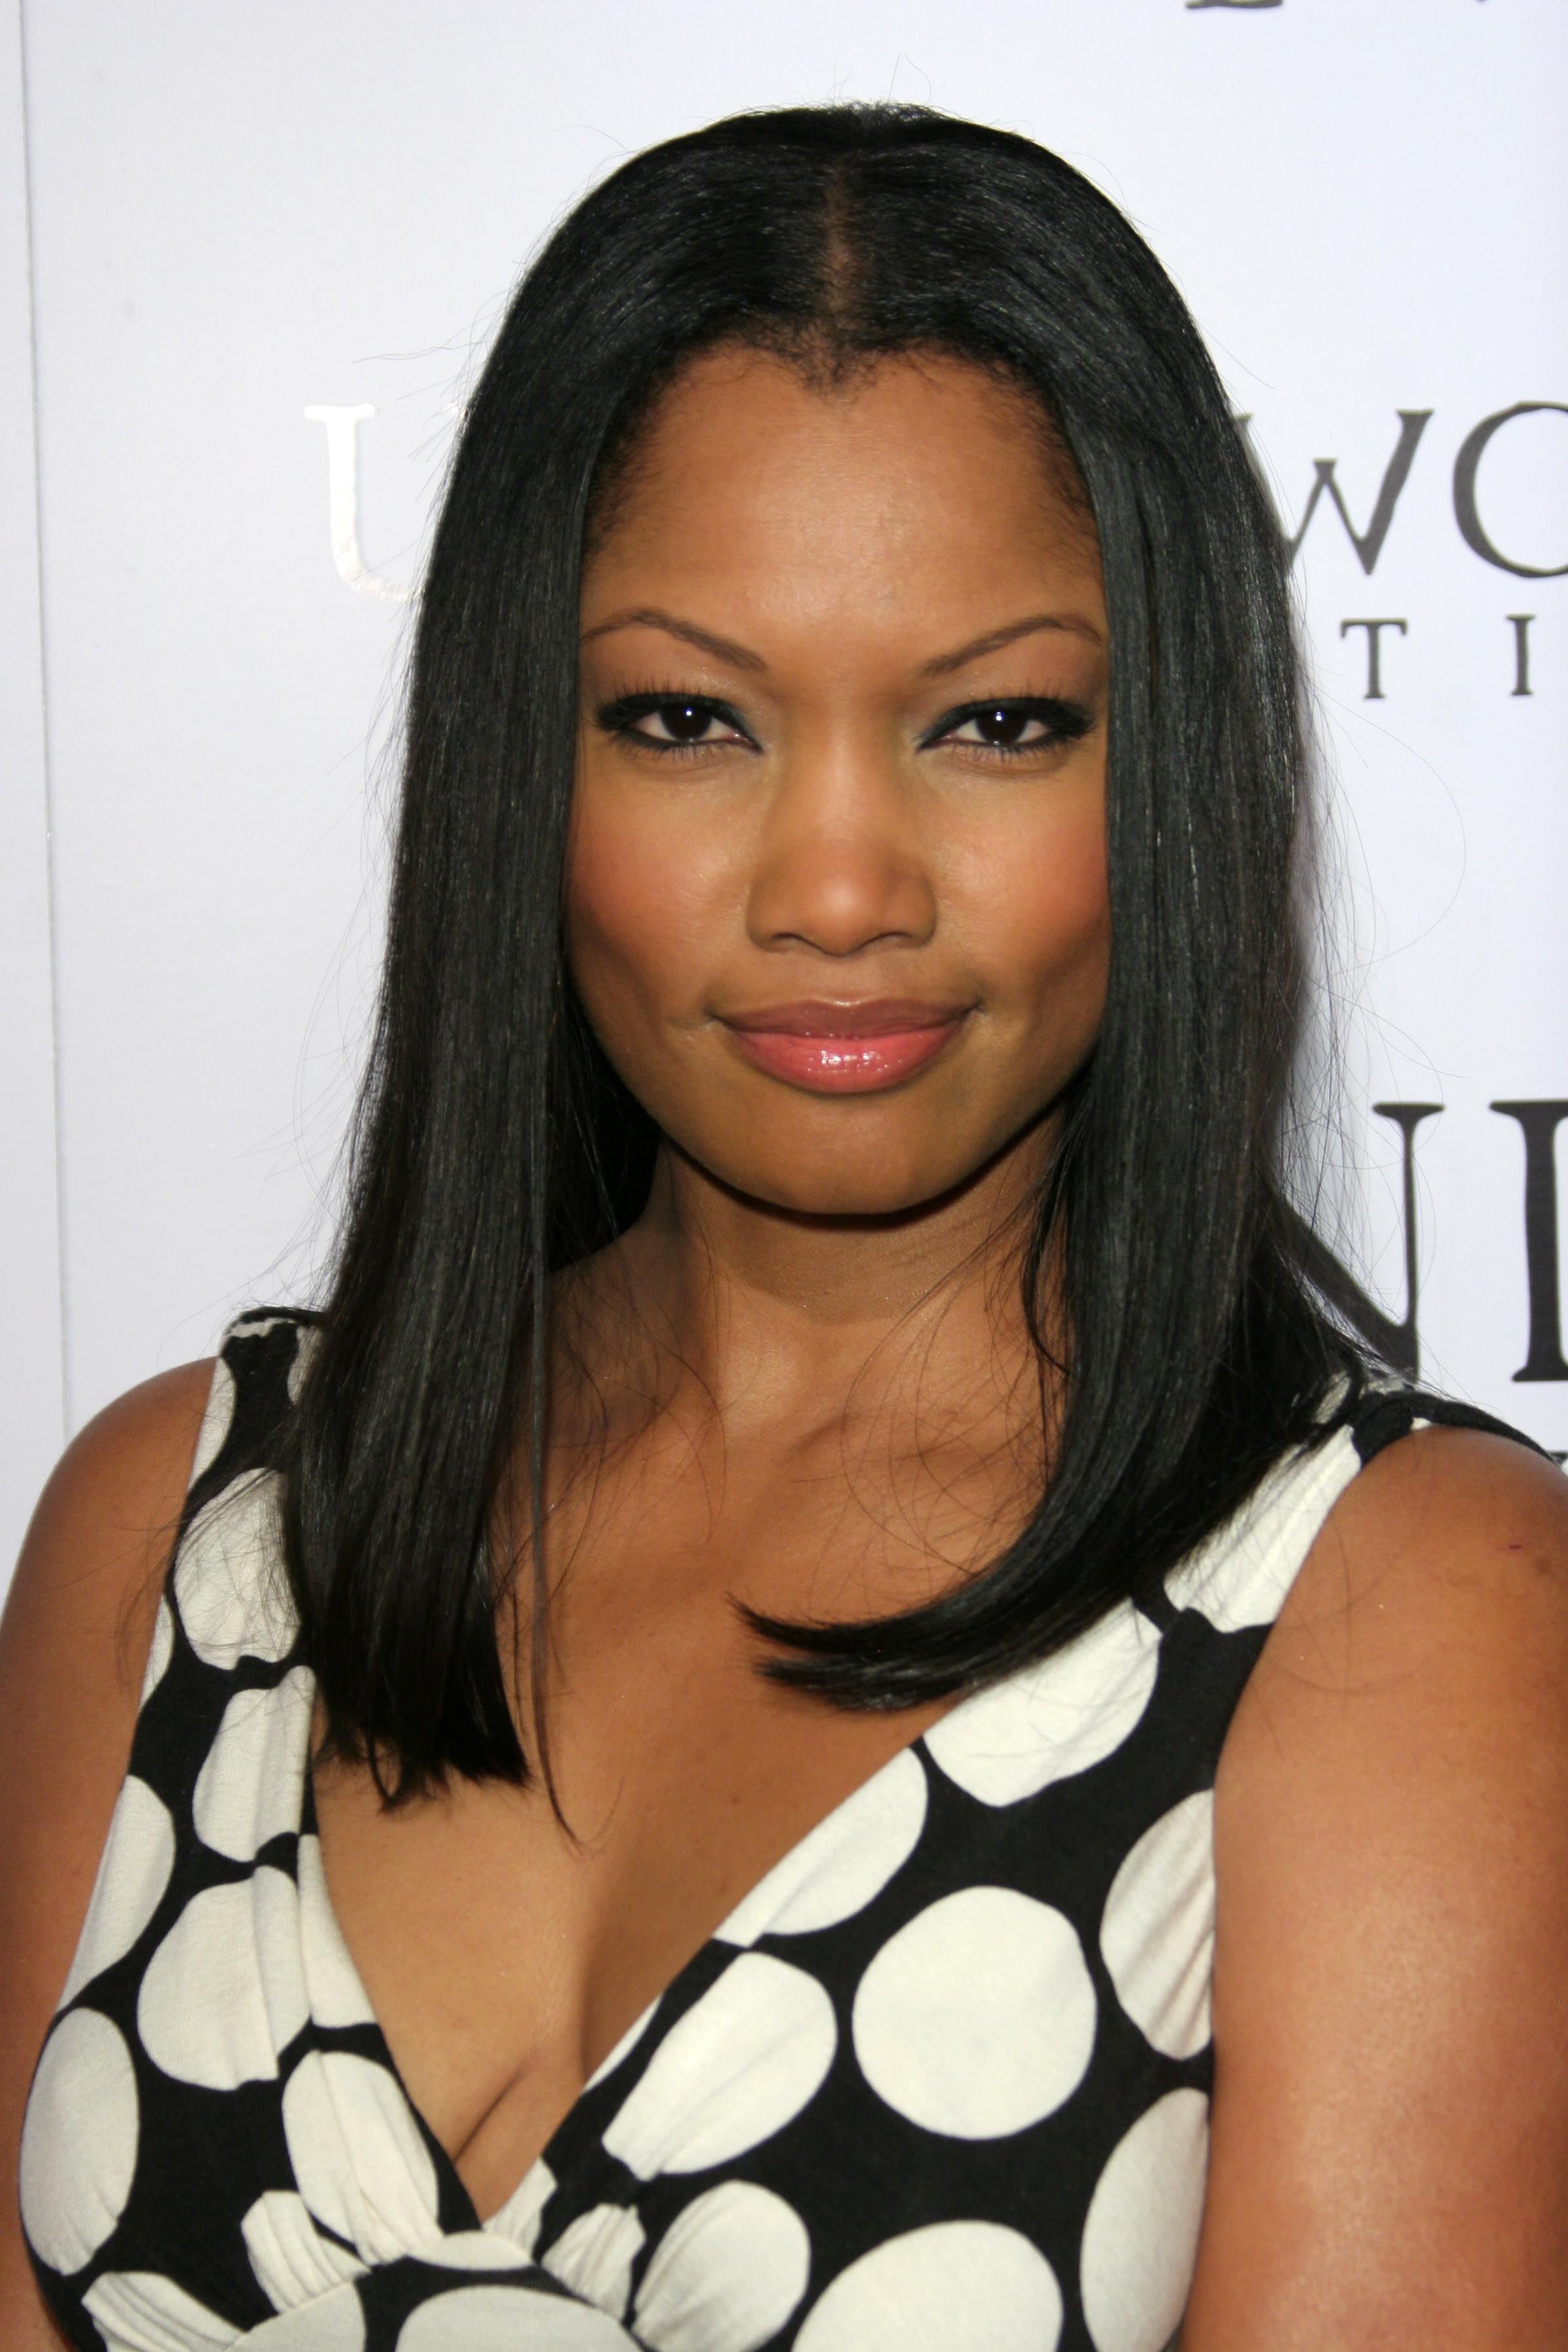 garcelle beauvais instagramgarcelle beauvais bad company, garcelle beauvais instagram, garcelle beauvais net worth, garcelle beauvais twins, garcelle beauvais husband, garcelle beauvais email, garcelle beauvais age, garcelle beauvais 2015, garcelle beauvais sons, garcelle beauvais ex husband, garcelle beauvais divorce, garcelle beauvais family